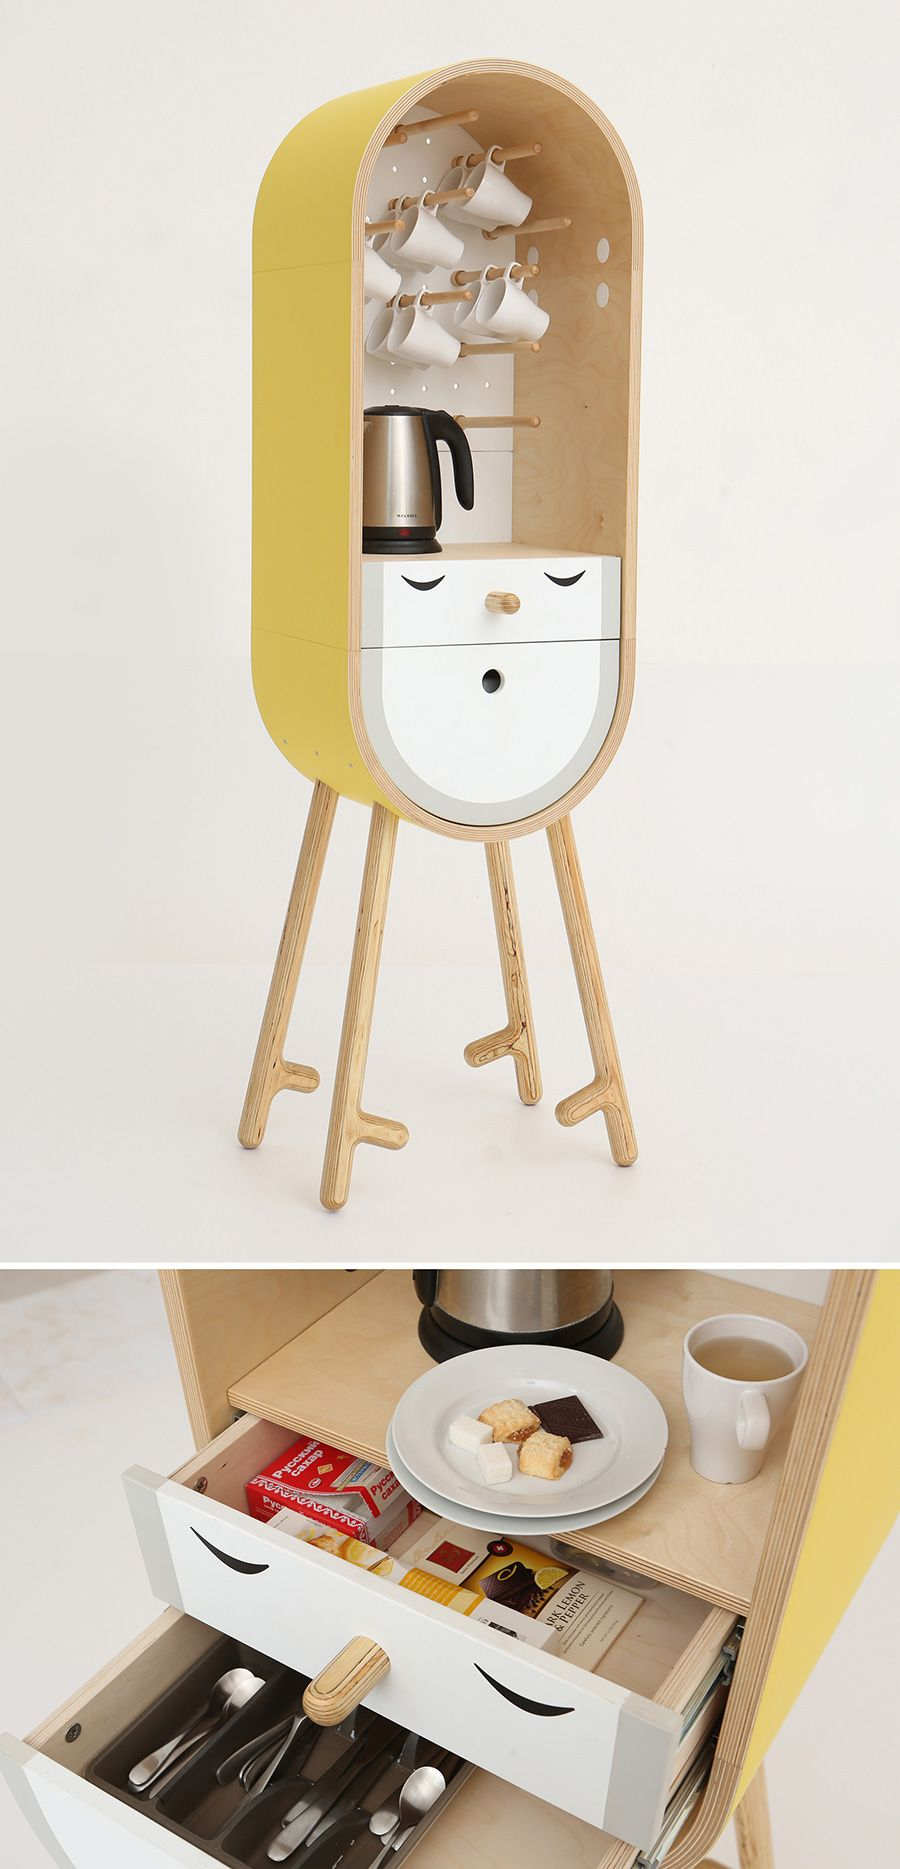 The capsular micro kitchen.Aotta studio has developed a project of a moveable capsular microkitchen/bar for home, office and hotel use.           — LOLO byAotta studio